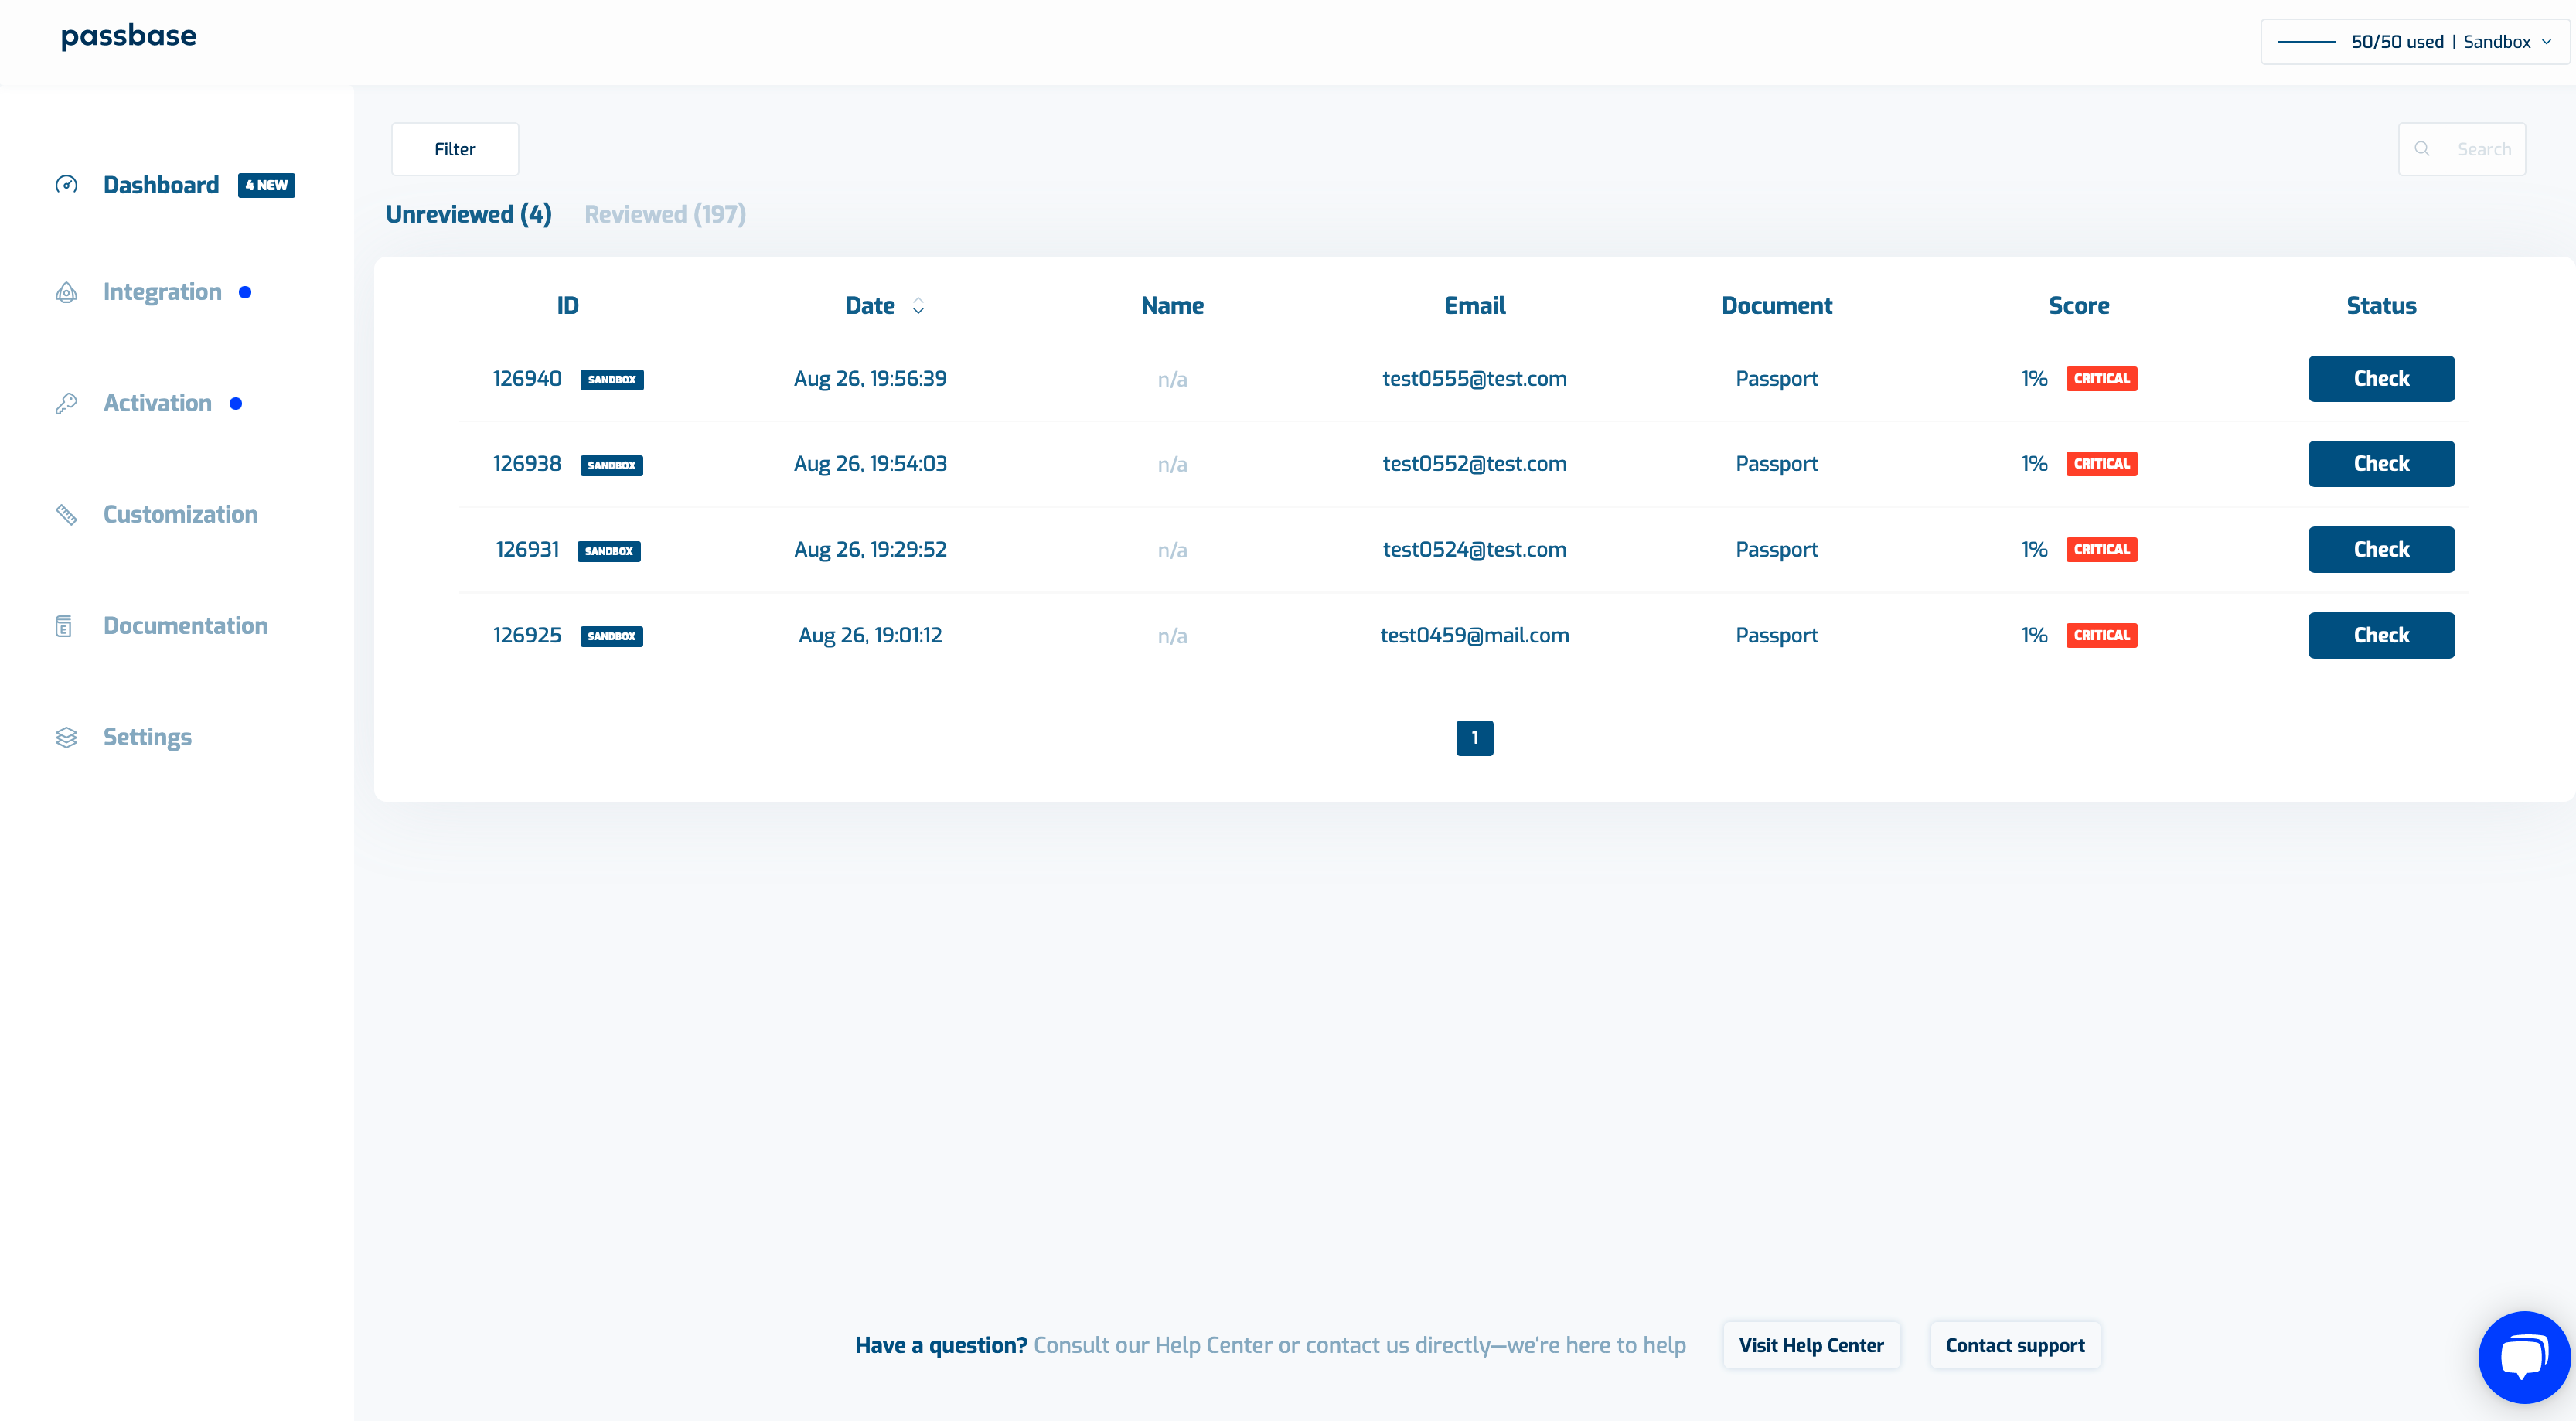 Passbase dashboard with verifications and a check button that can be clicked